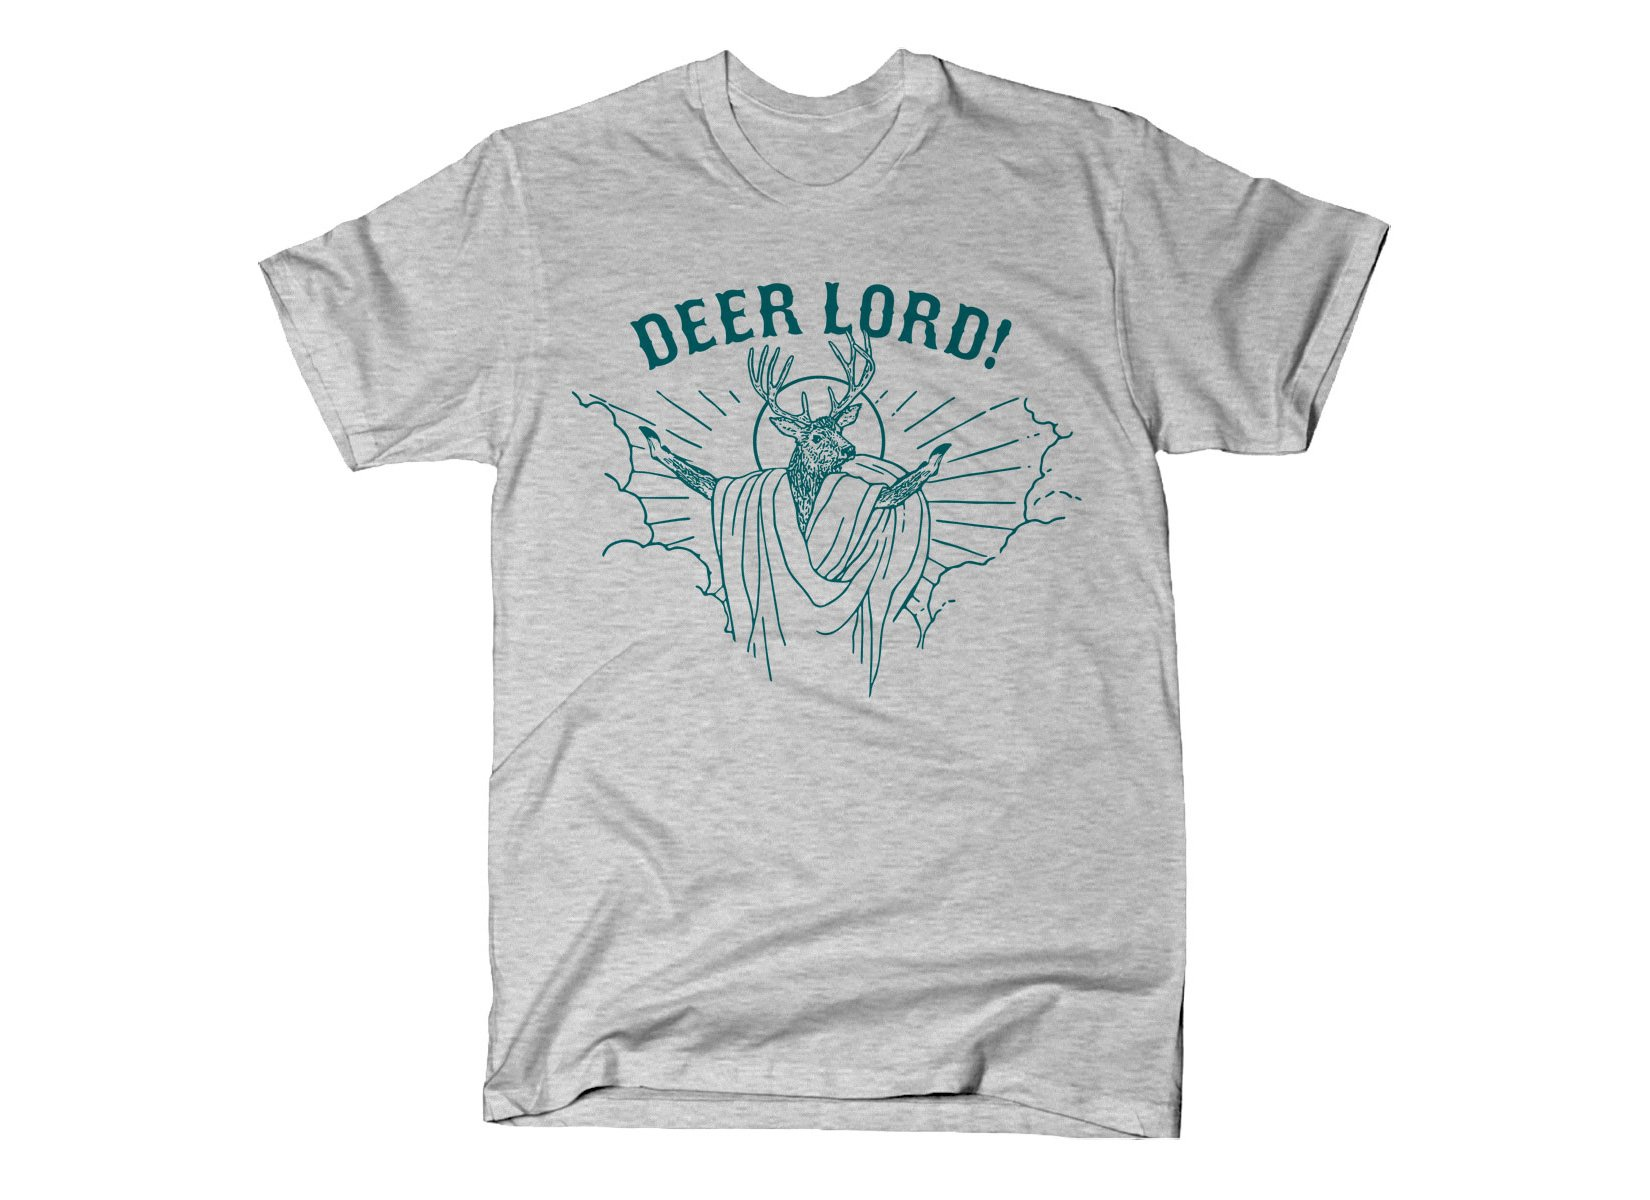 Deer Lord on Mens T-Shirt